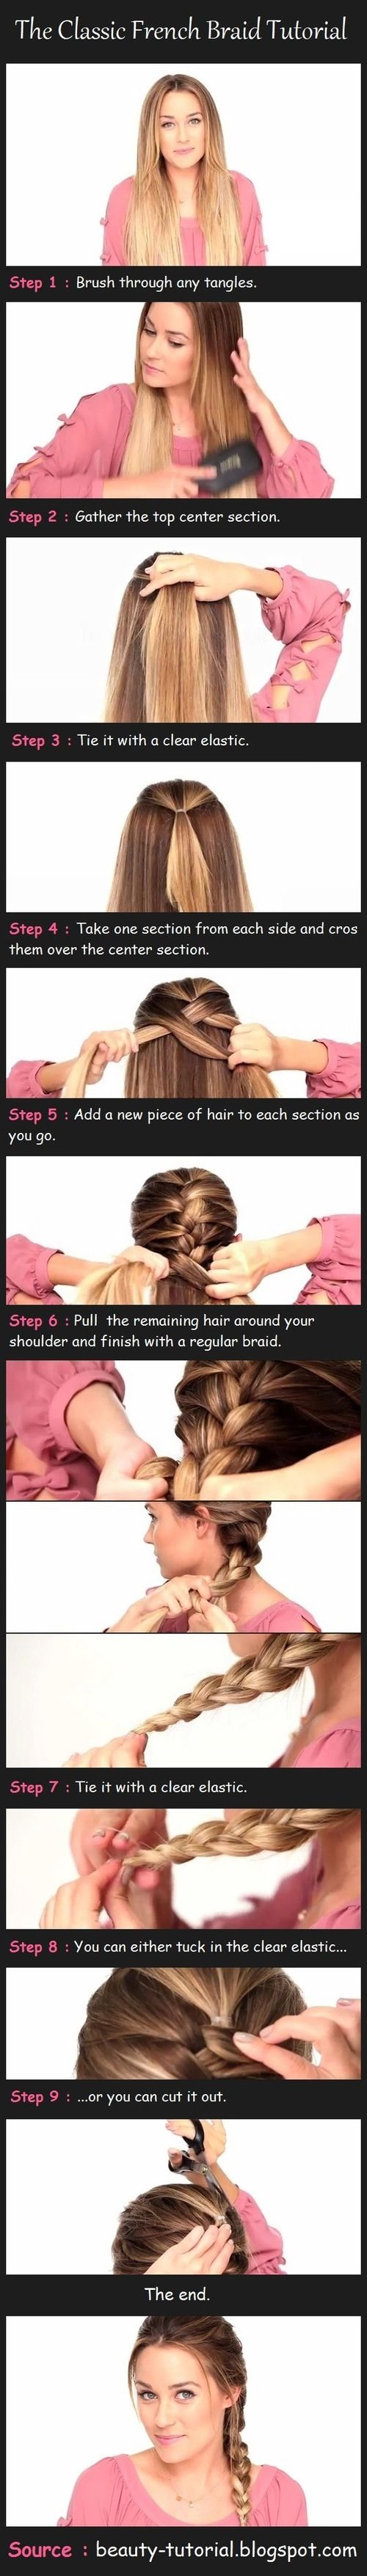 French Braid. This seems easier for me to comprehend lol.